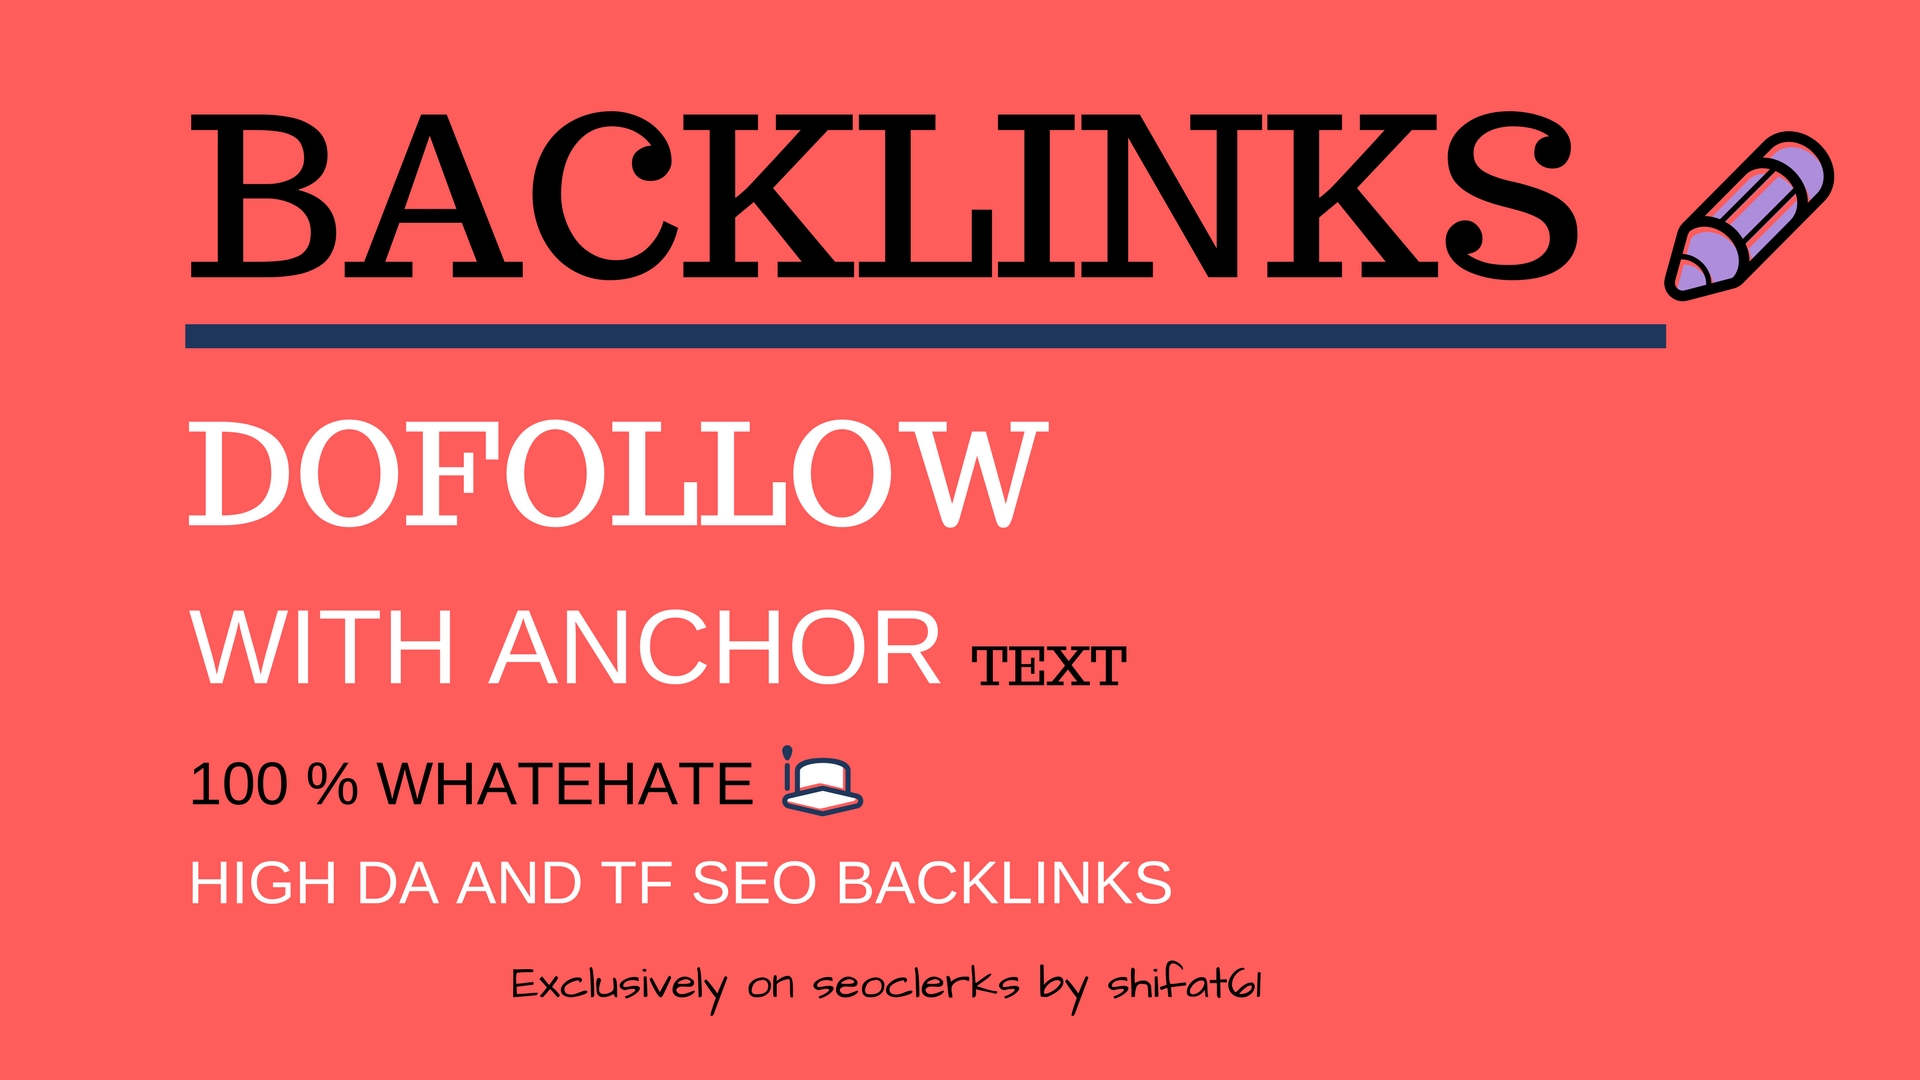 30 SEO Backlinks, Dofollow With Anchor Text